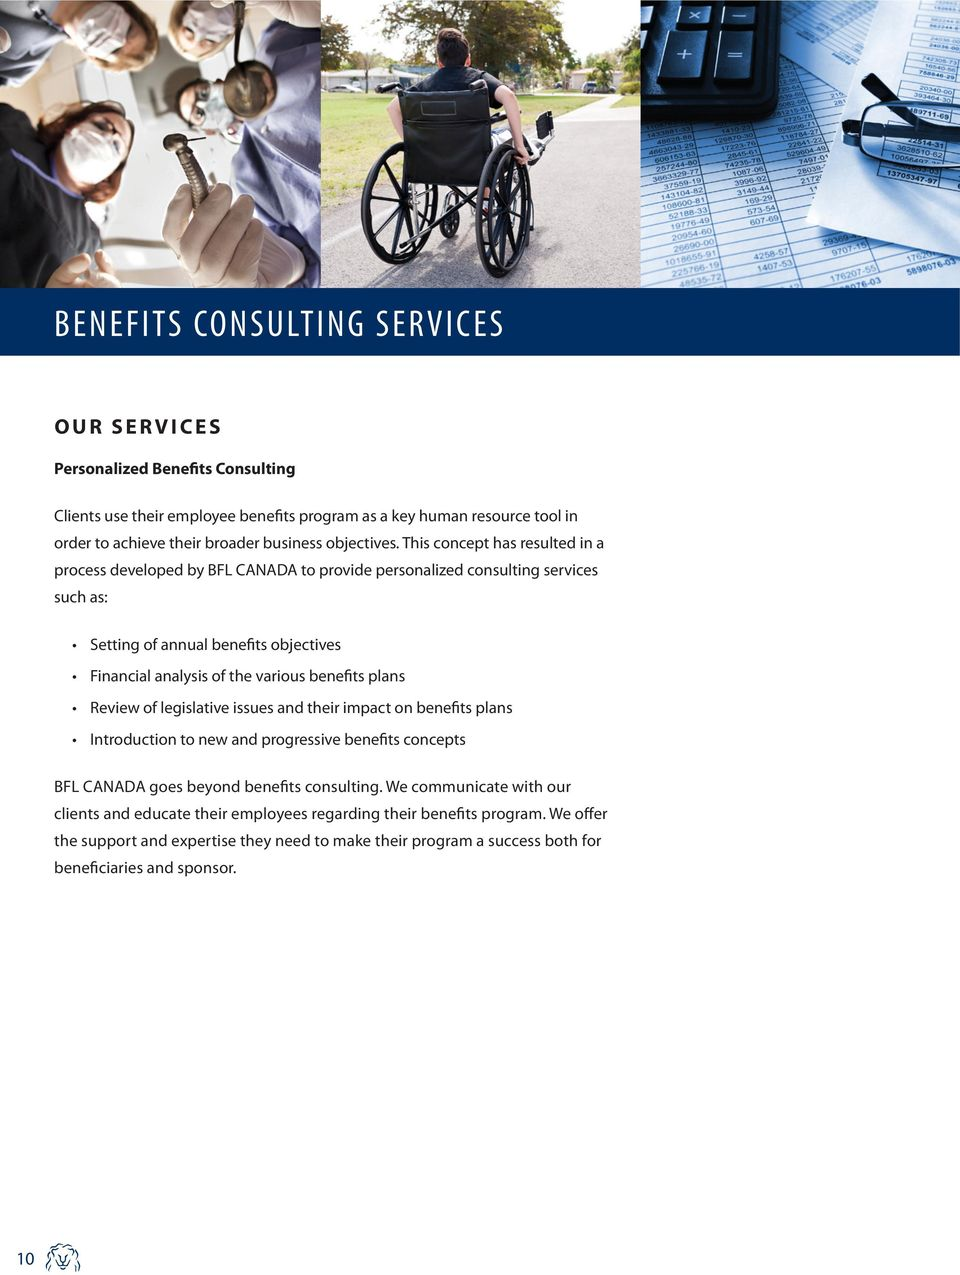 This concept has resulted in a process developed by BFL CANADA to provide personalized consulting services such as: Setting of annual benefits objectives Financial analysis of the various